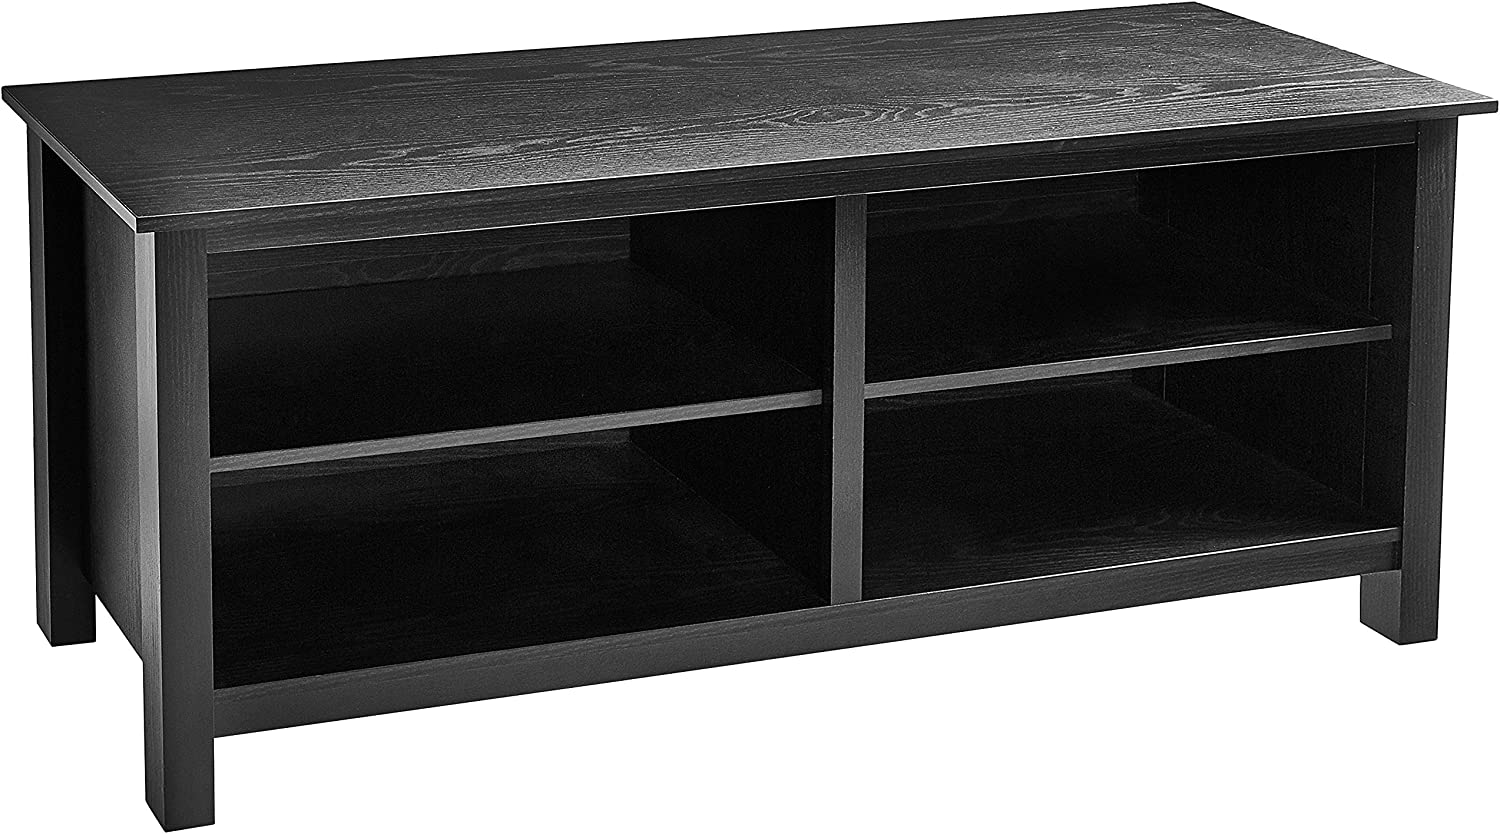 """ROCKPOINT TV Stand Storage Media Console for TV's up to 65 Inches 58"""" with 4 Storage Shelves,Rustic Oak"""